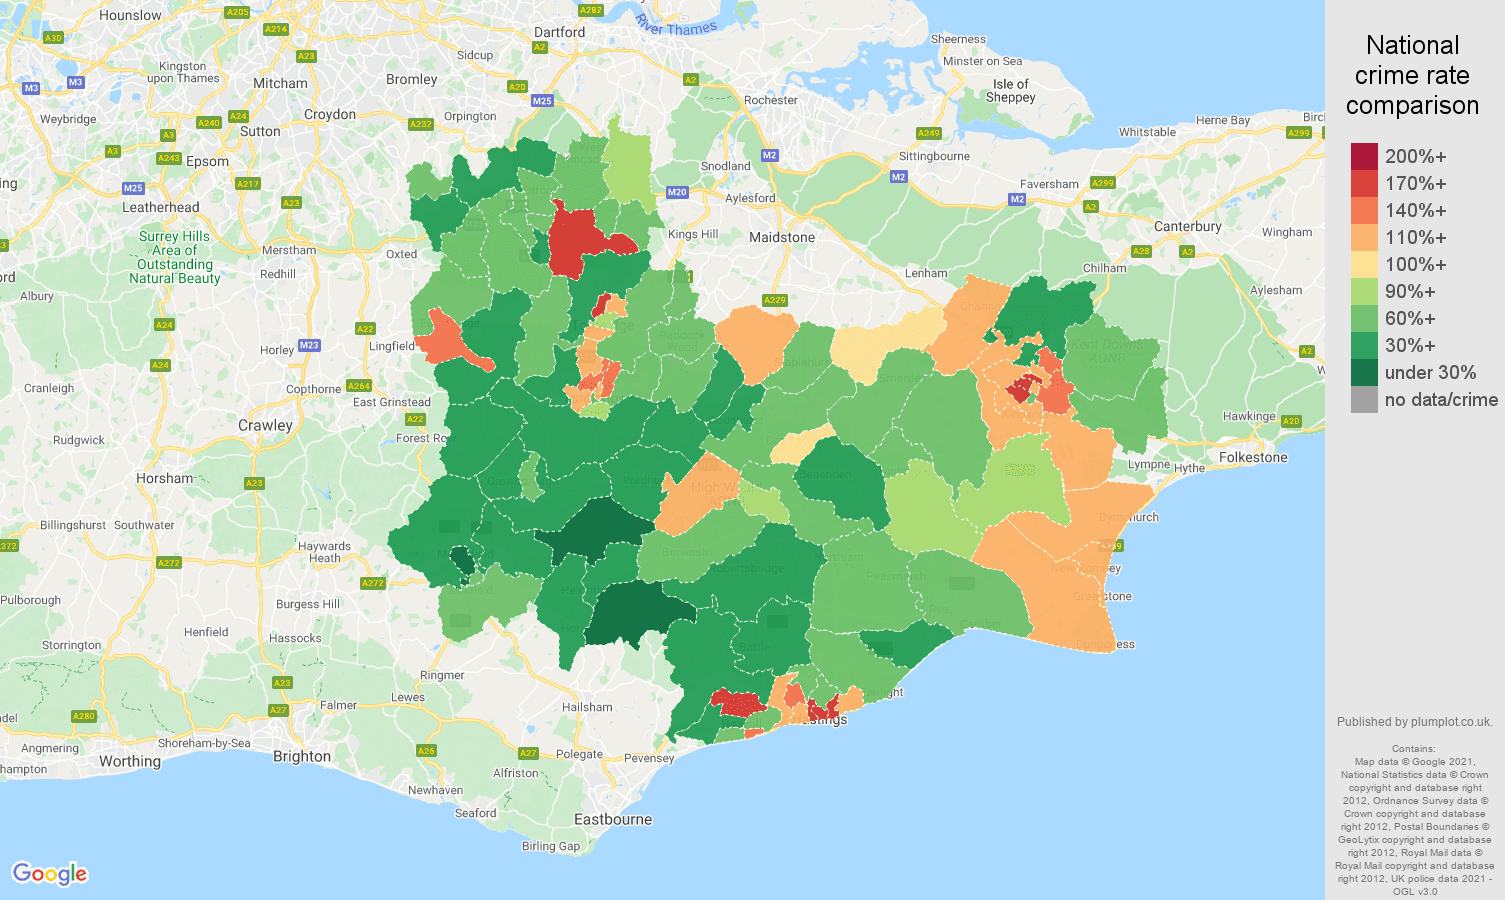 Tonbridge violent crime rate comparison map